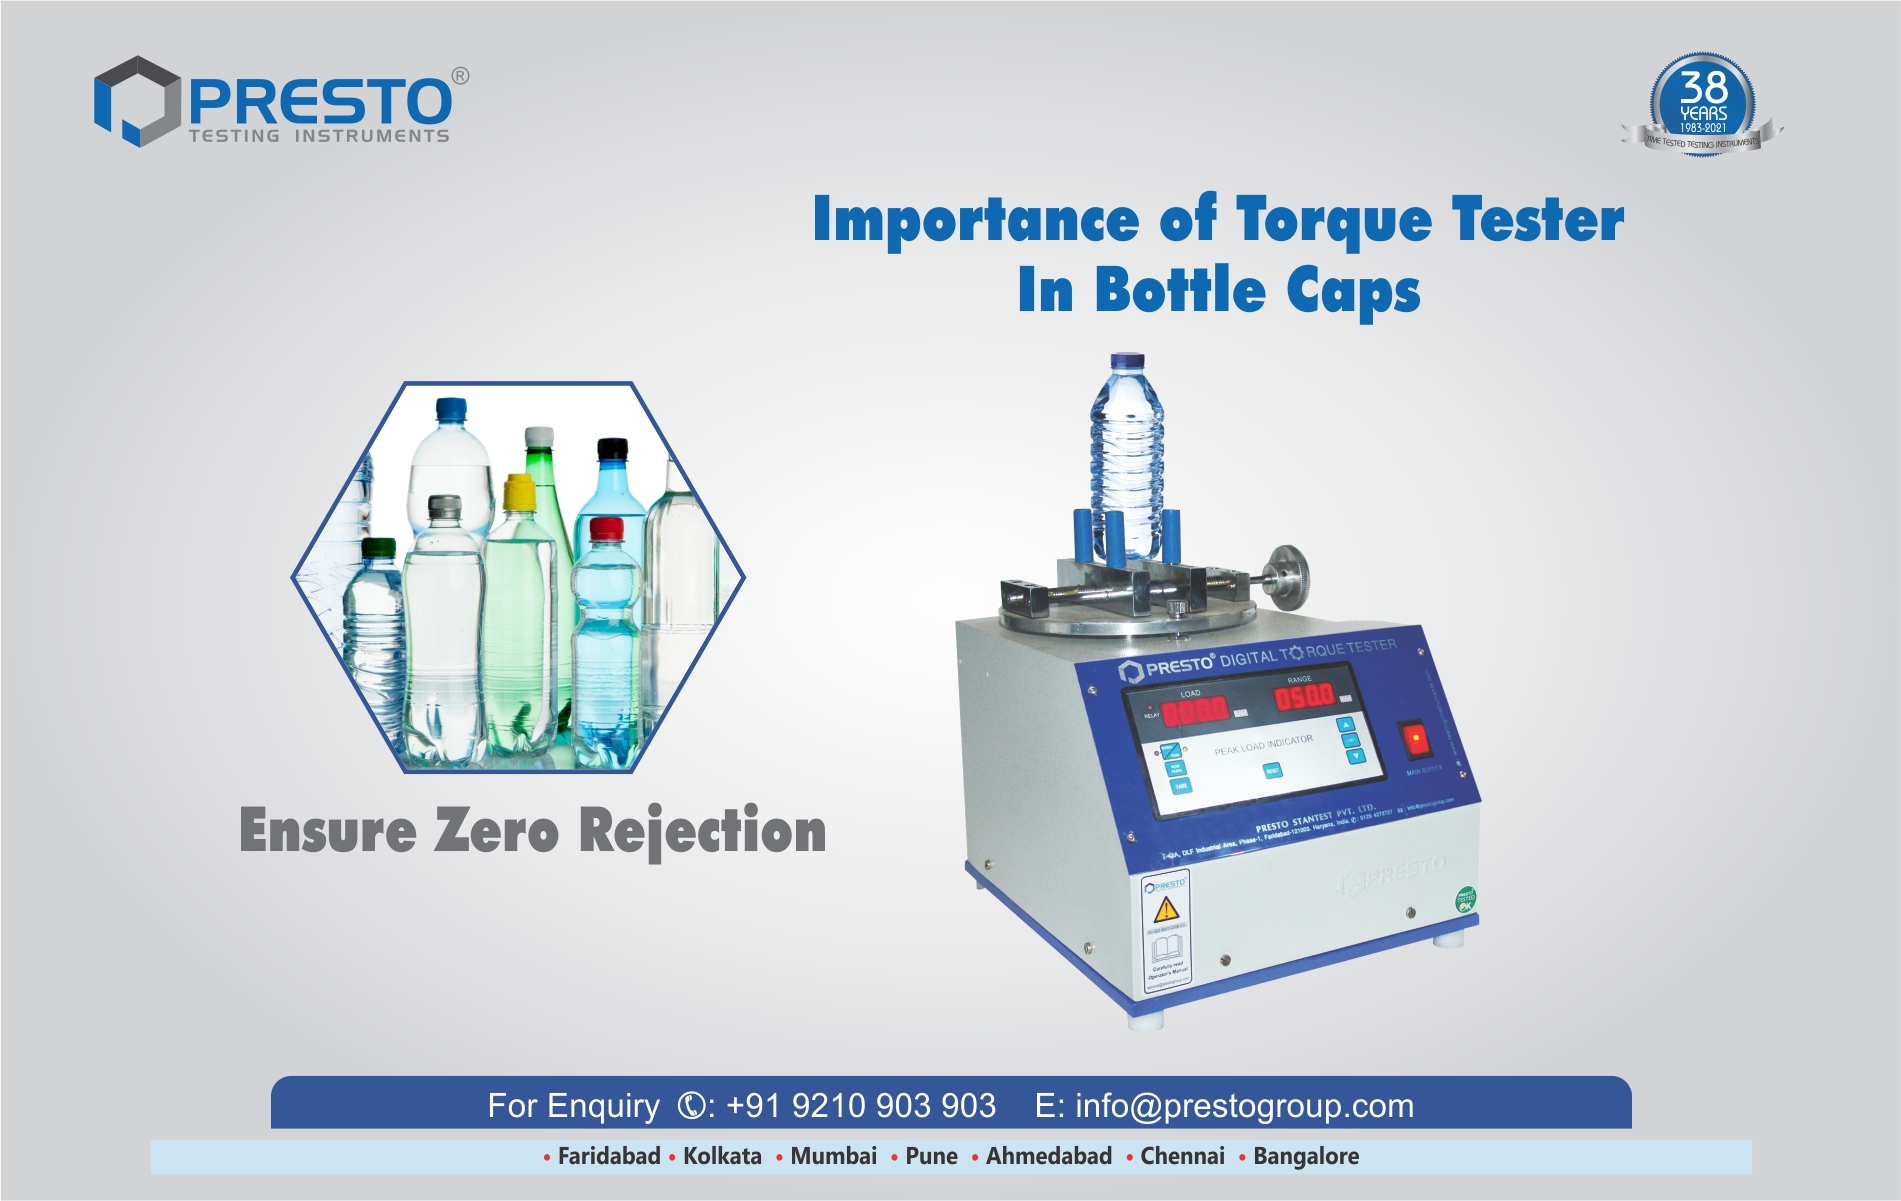 Importance of Torque Tester in Bottle Caps